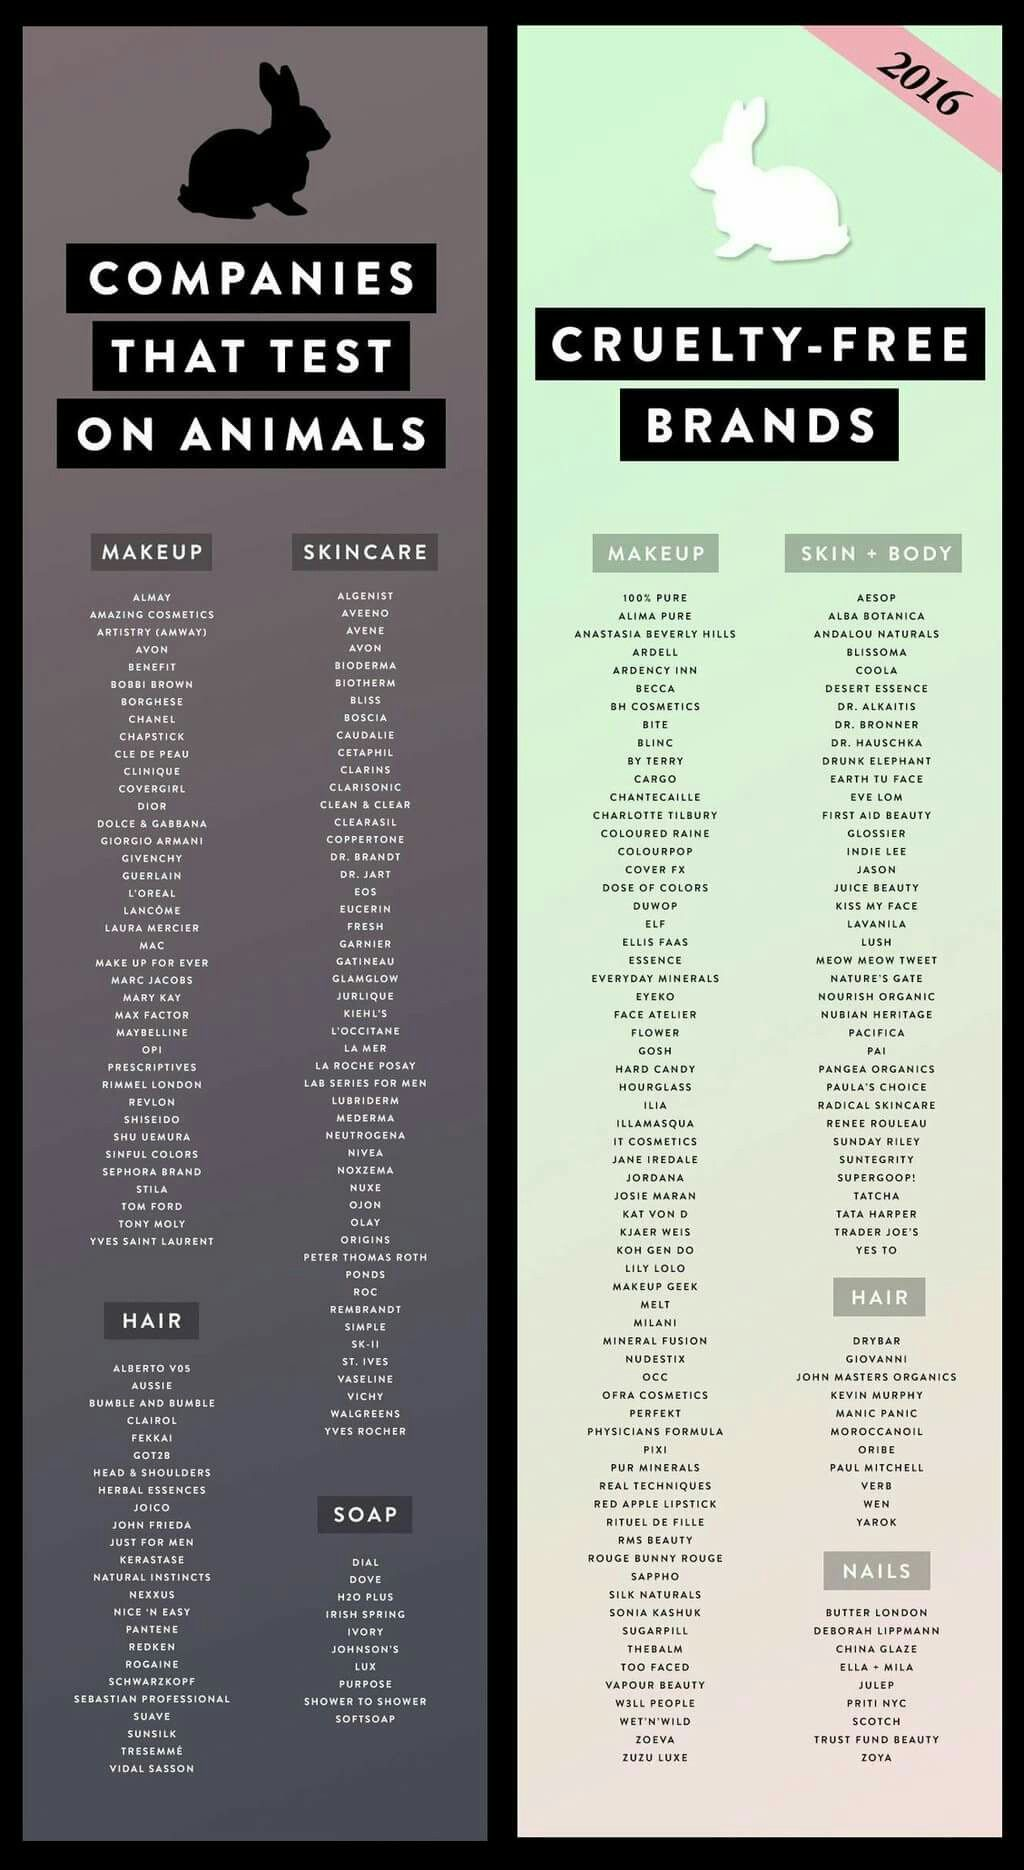 Pin By Andrea On Be Aware Cruelty Free Brands Cruelty Free Beauty Cruelty Free Makeup